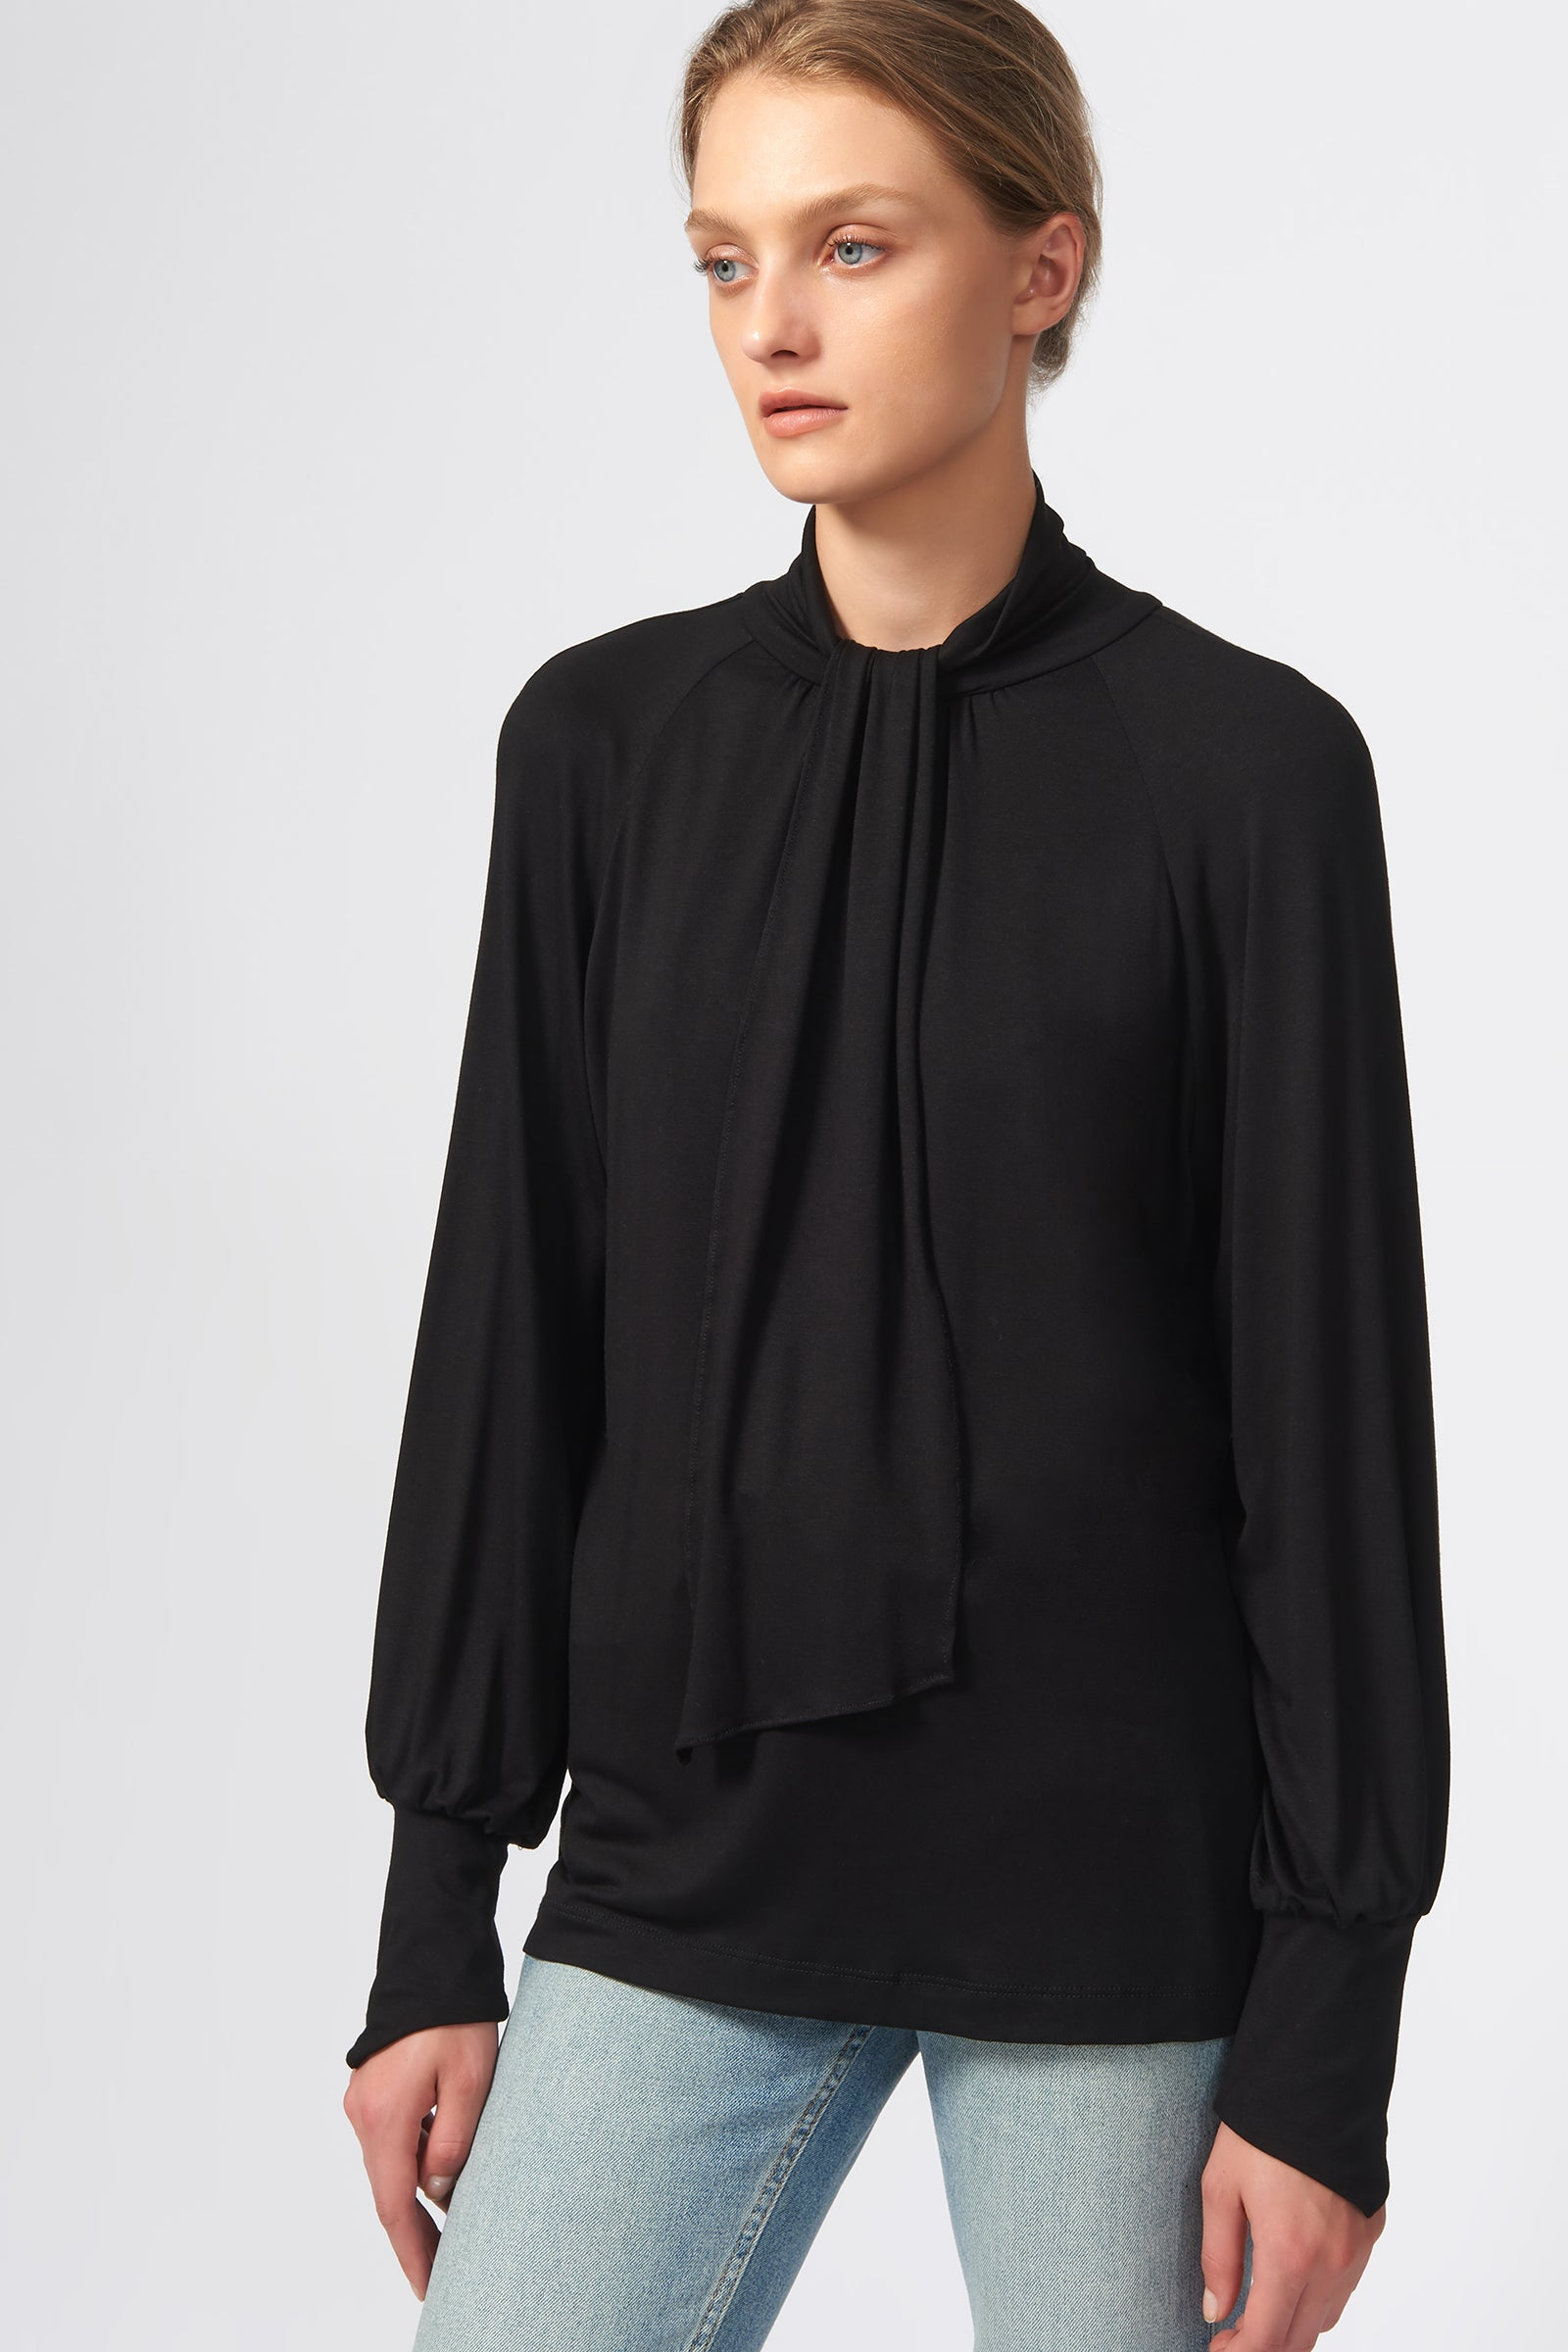 Kal Rieman Priestess Knit Blouse in Black on Model Front View